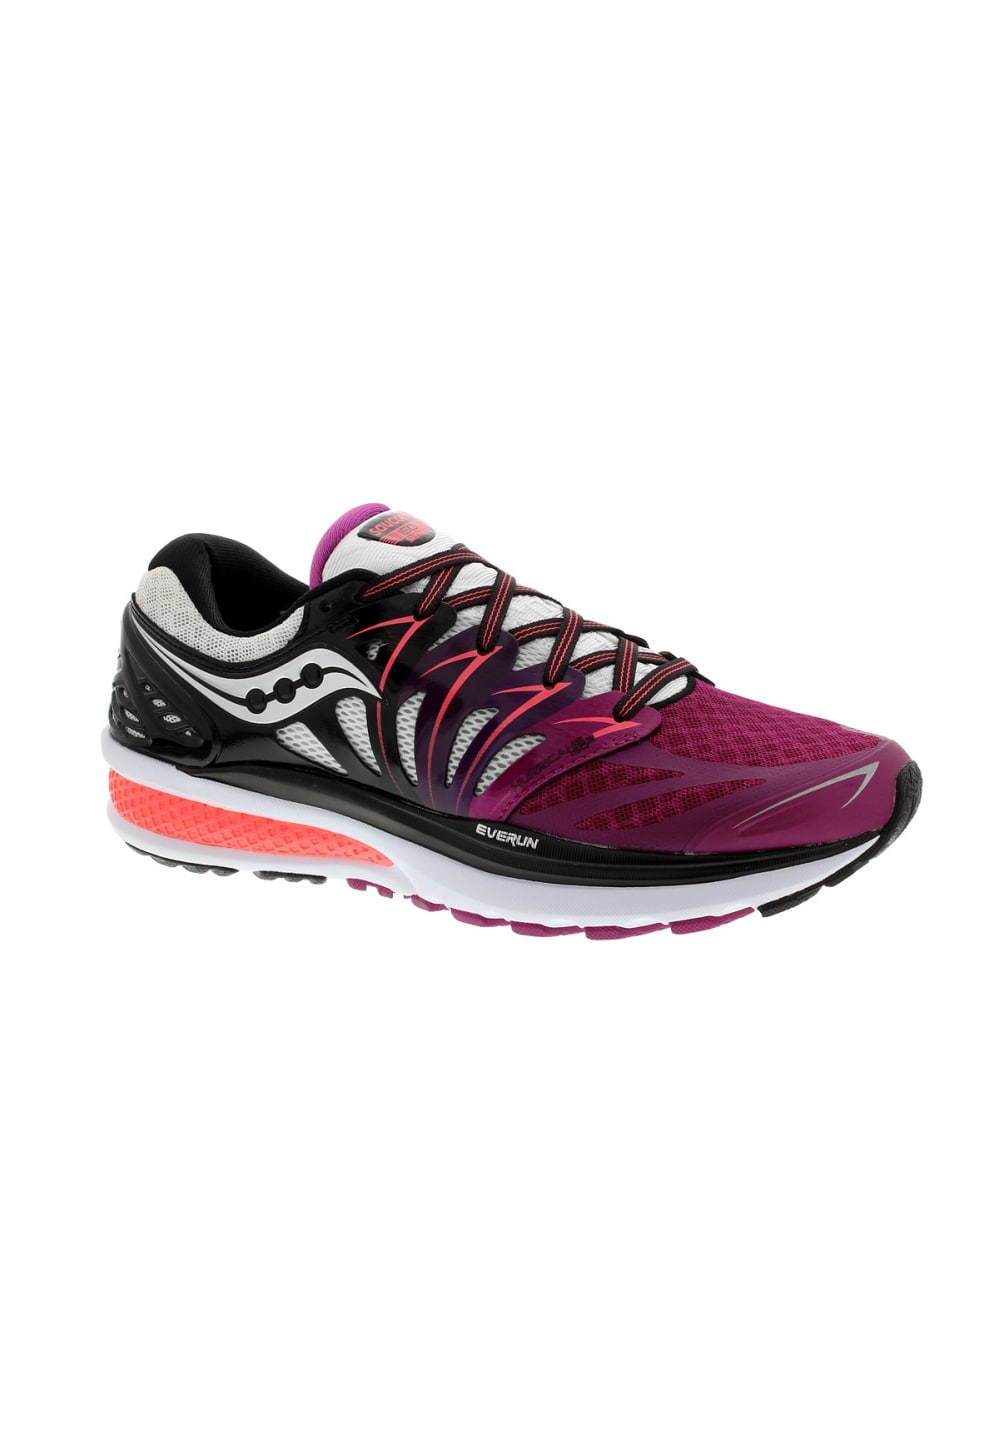 7800ff3f Saucony Hurricane Iso 2 - Running shoes for Women - Black